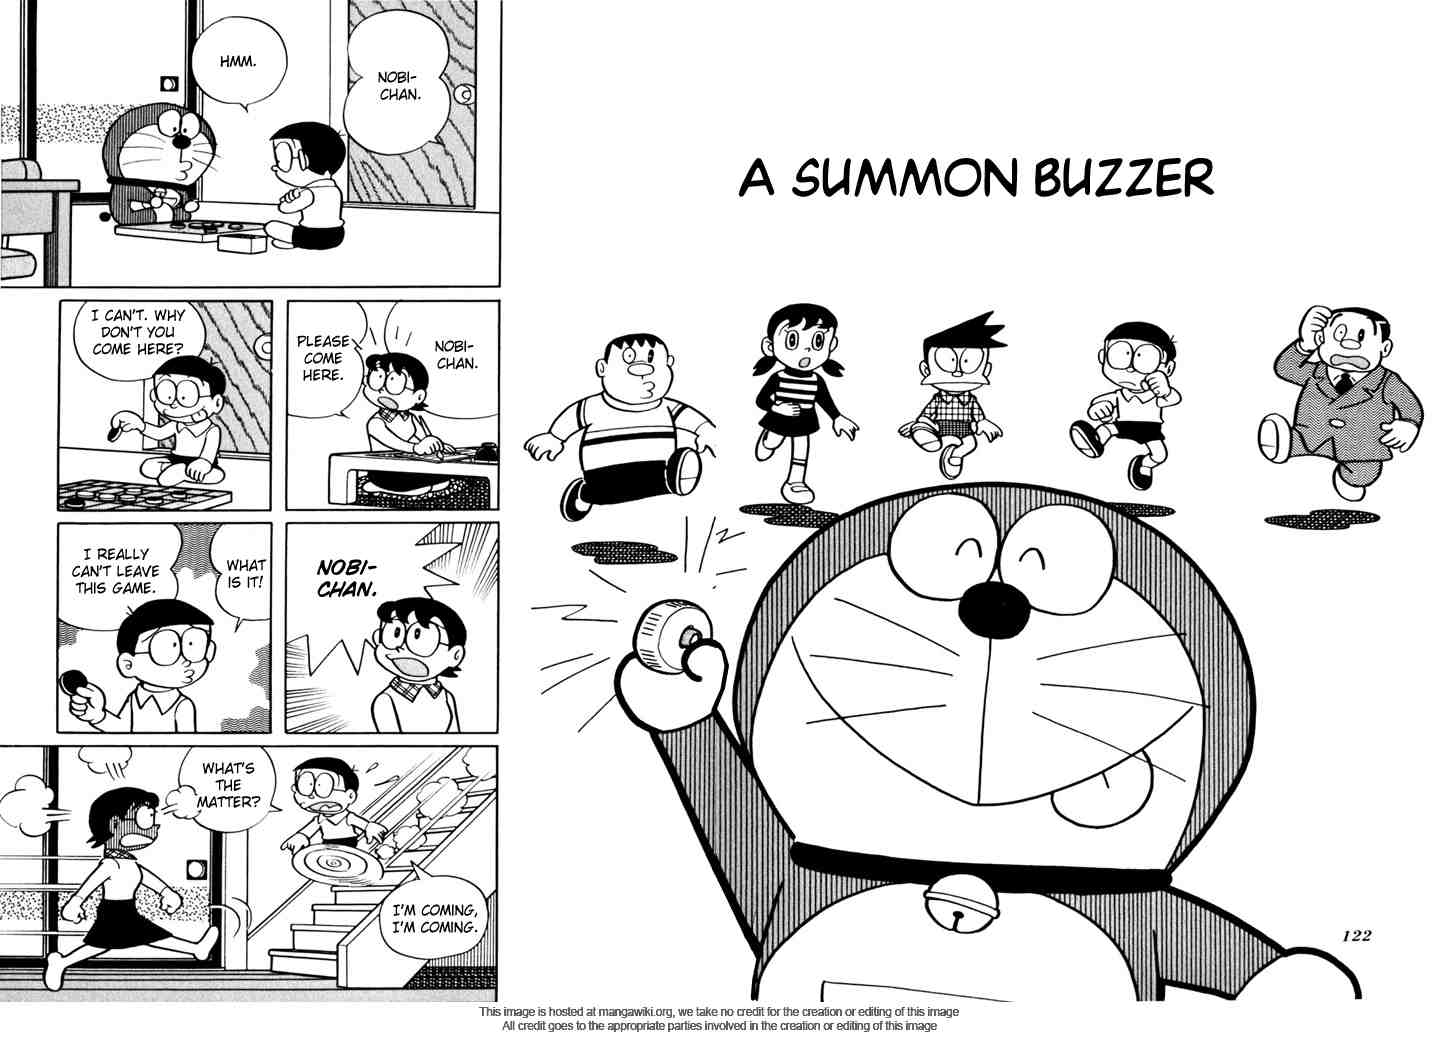 Chapter 15: A Summon Buzzer/Gallery